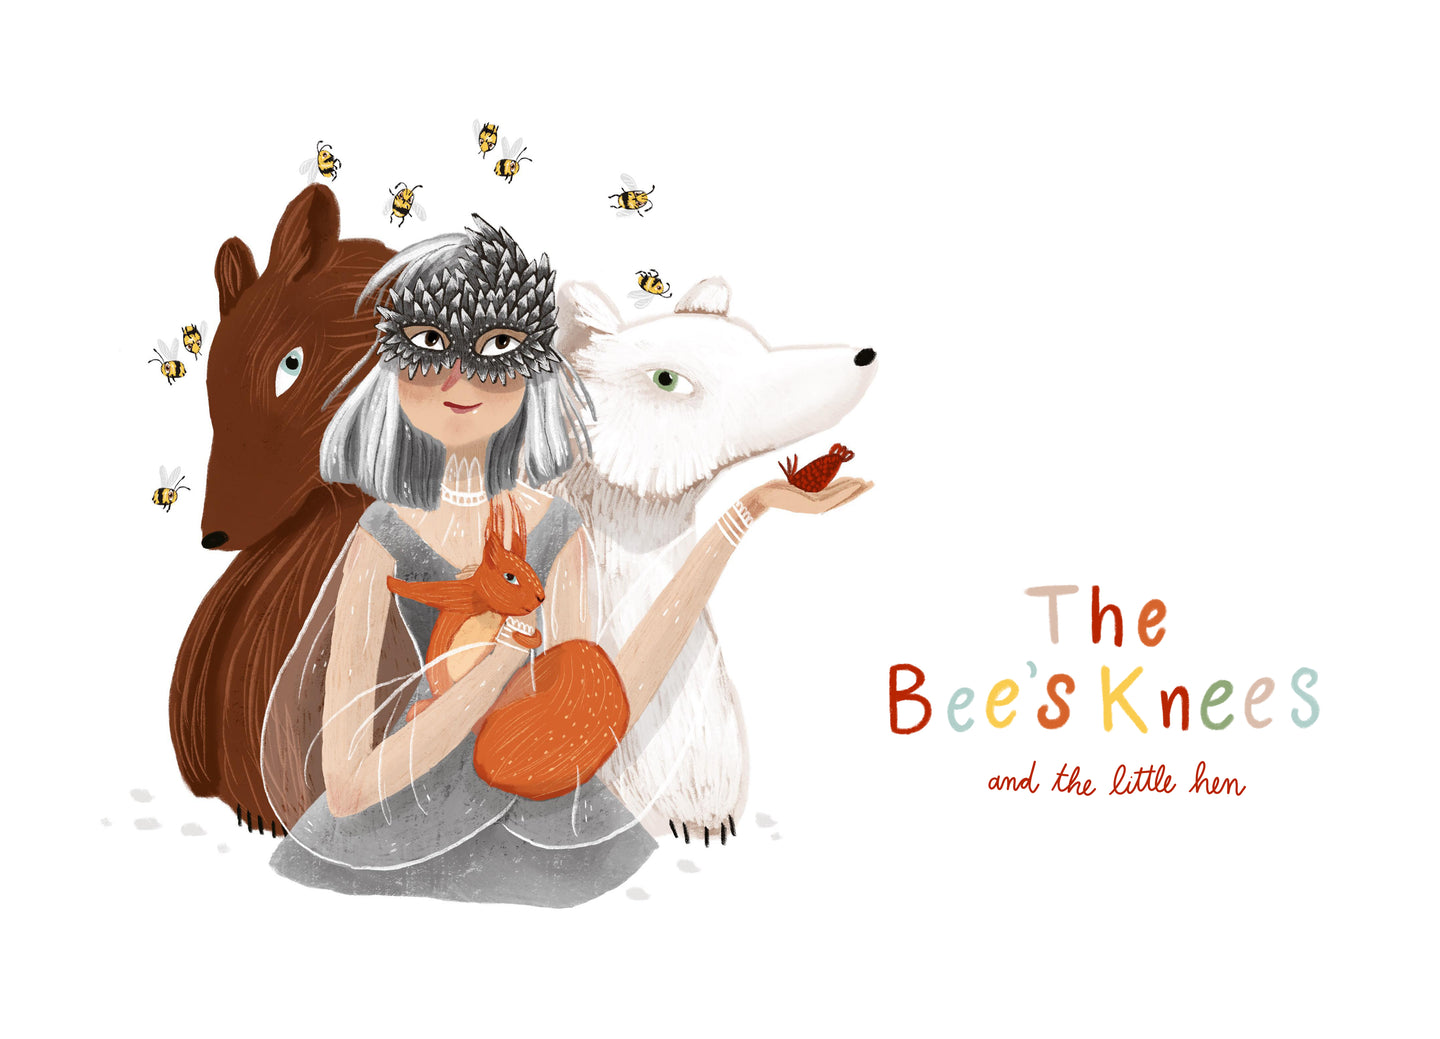 The Bees Knees - knitting book for children